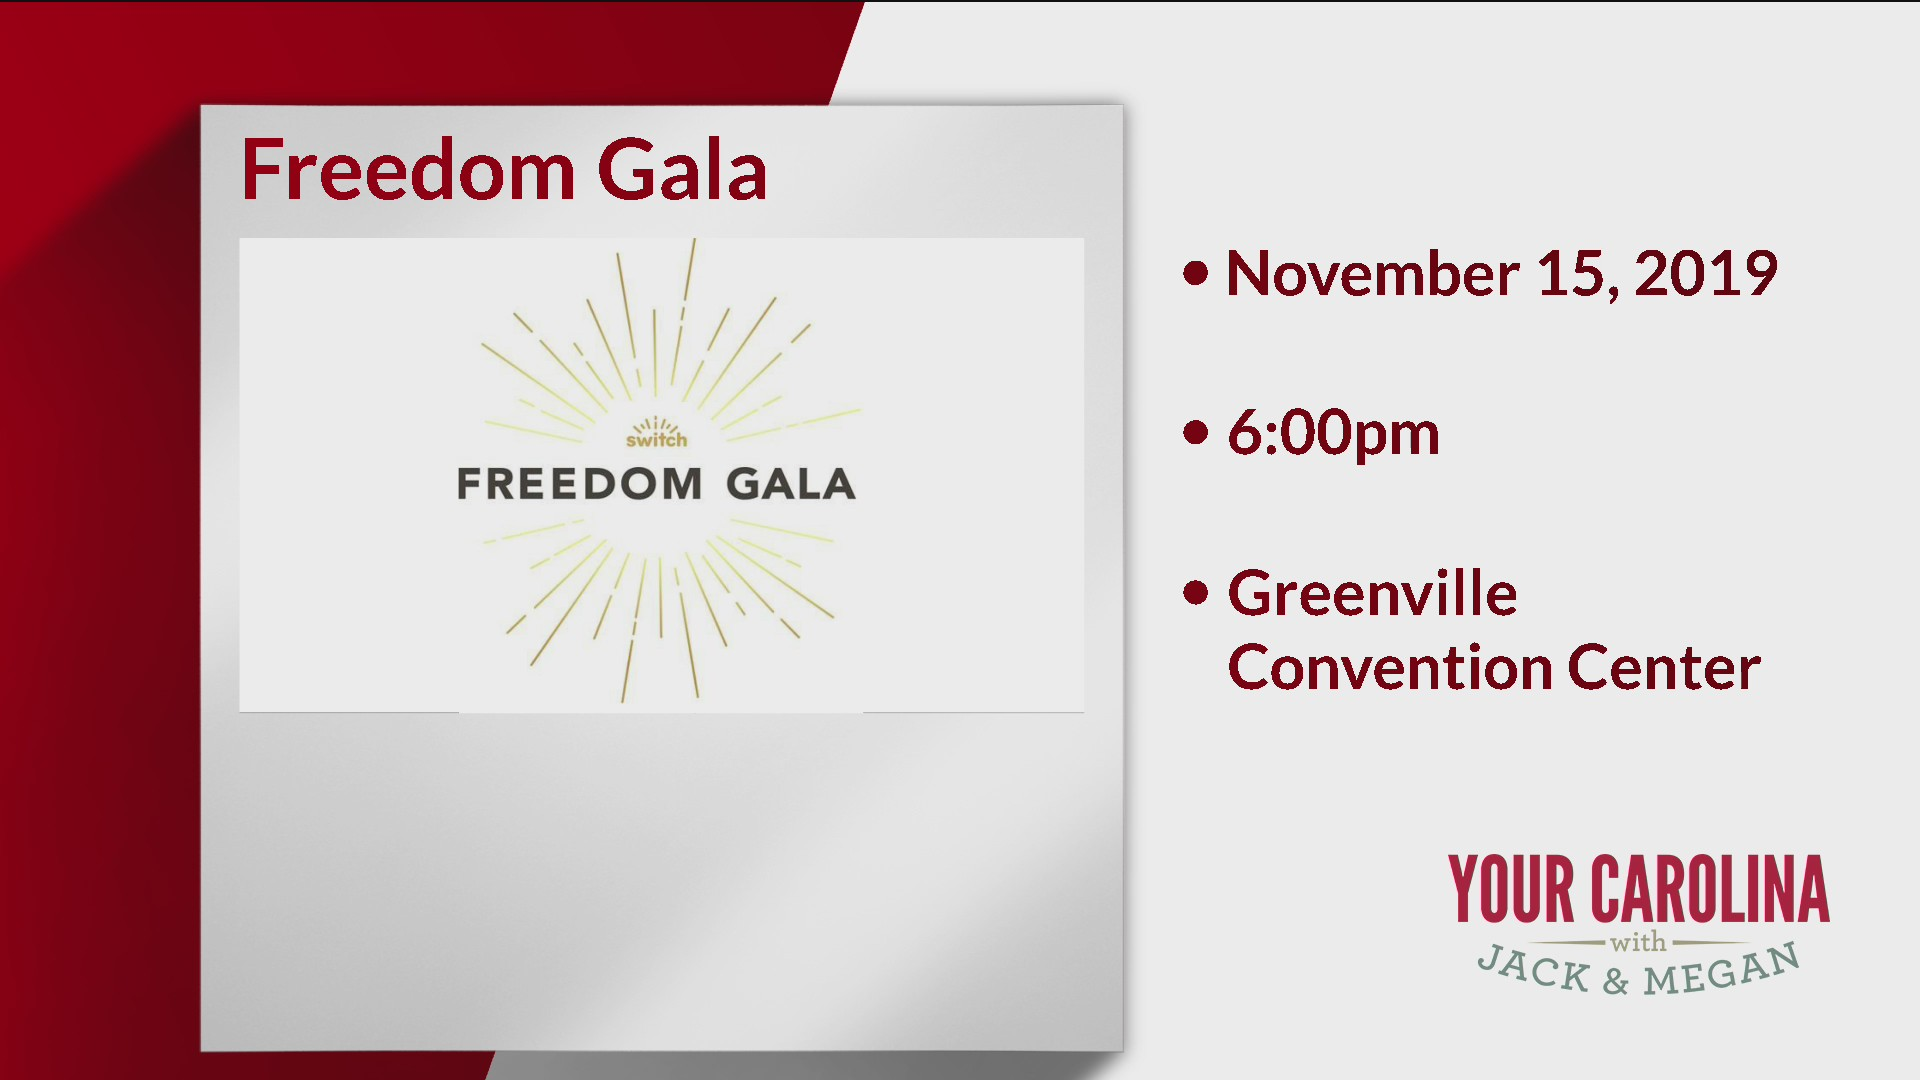 SWITCH's Fourth Annual Freedom Gala